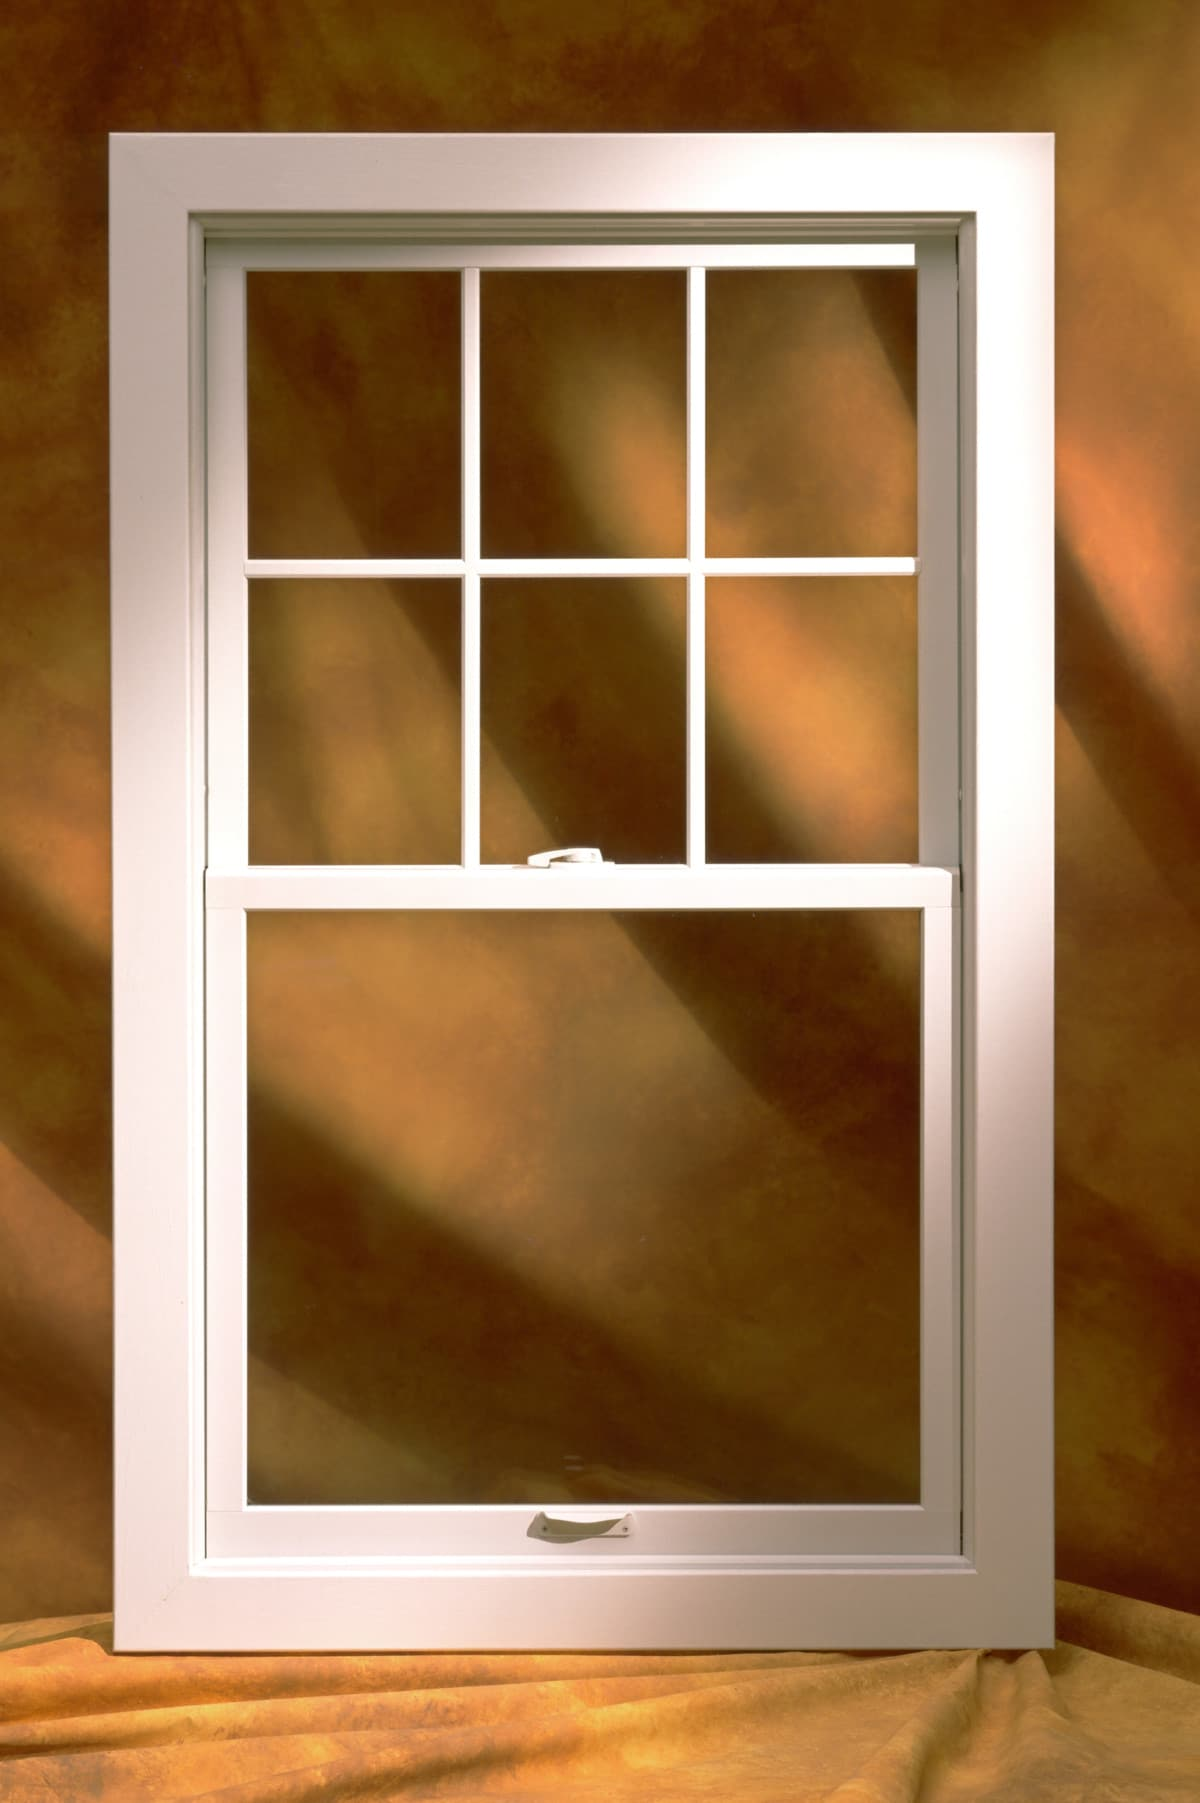 Double Hung Windows New Jersey : Common replacement window styles new jersey ny renewal